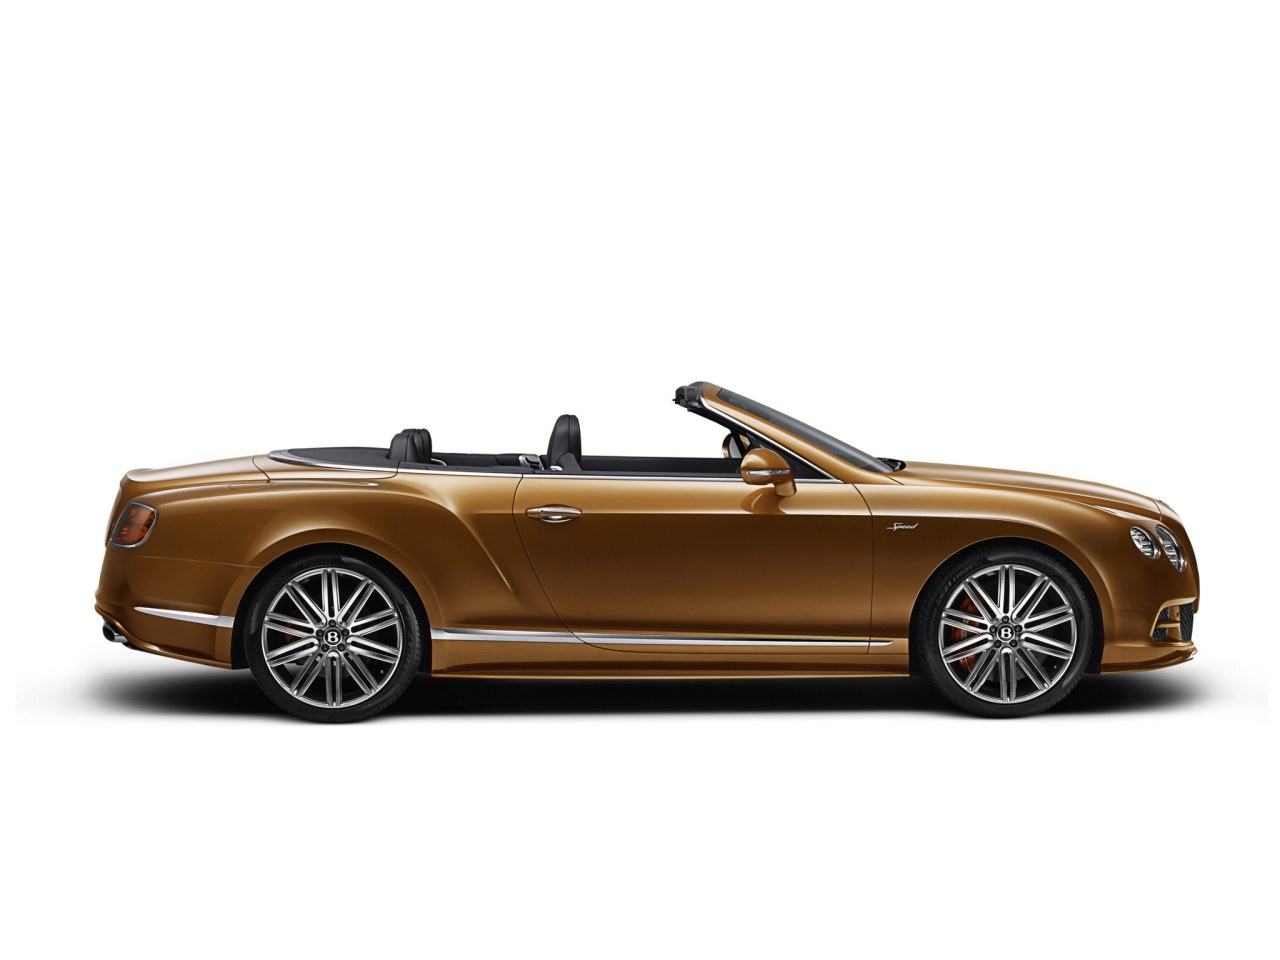 foto bentley continental gt speed cabrio 2014 bentley continental gt speed cabrio 2014 03. Black Bedroom Furniture Sets. Home Design Ideas